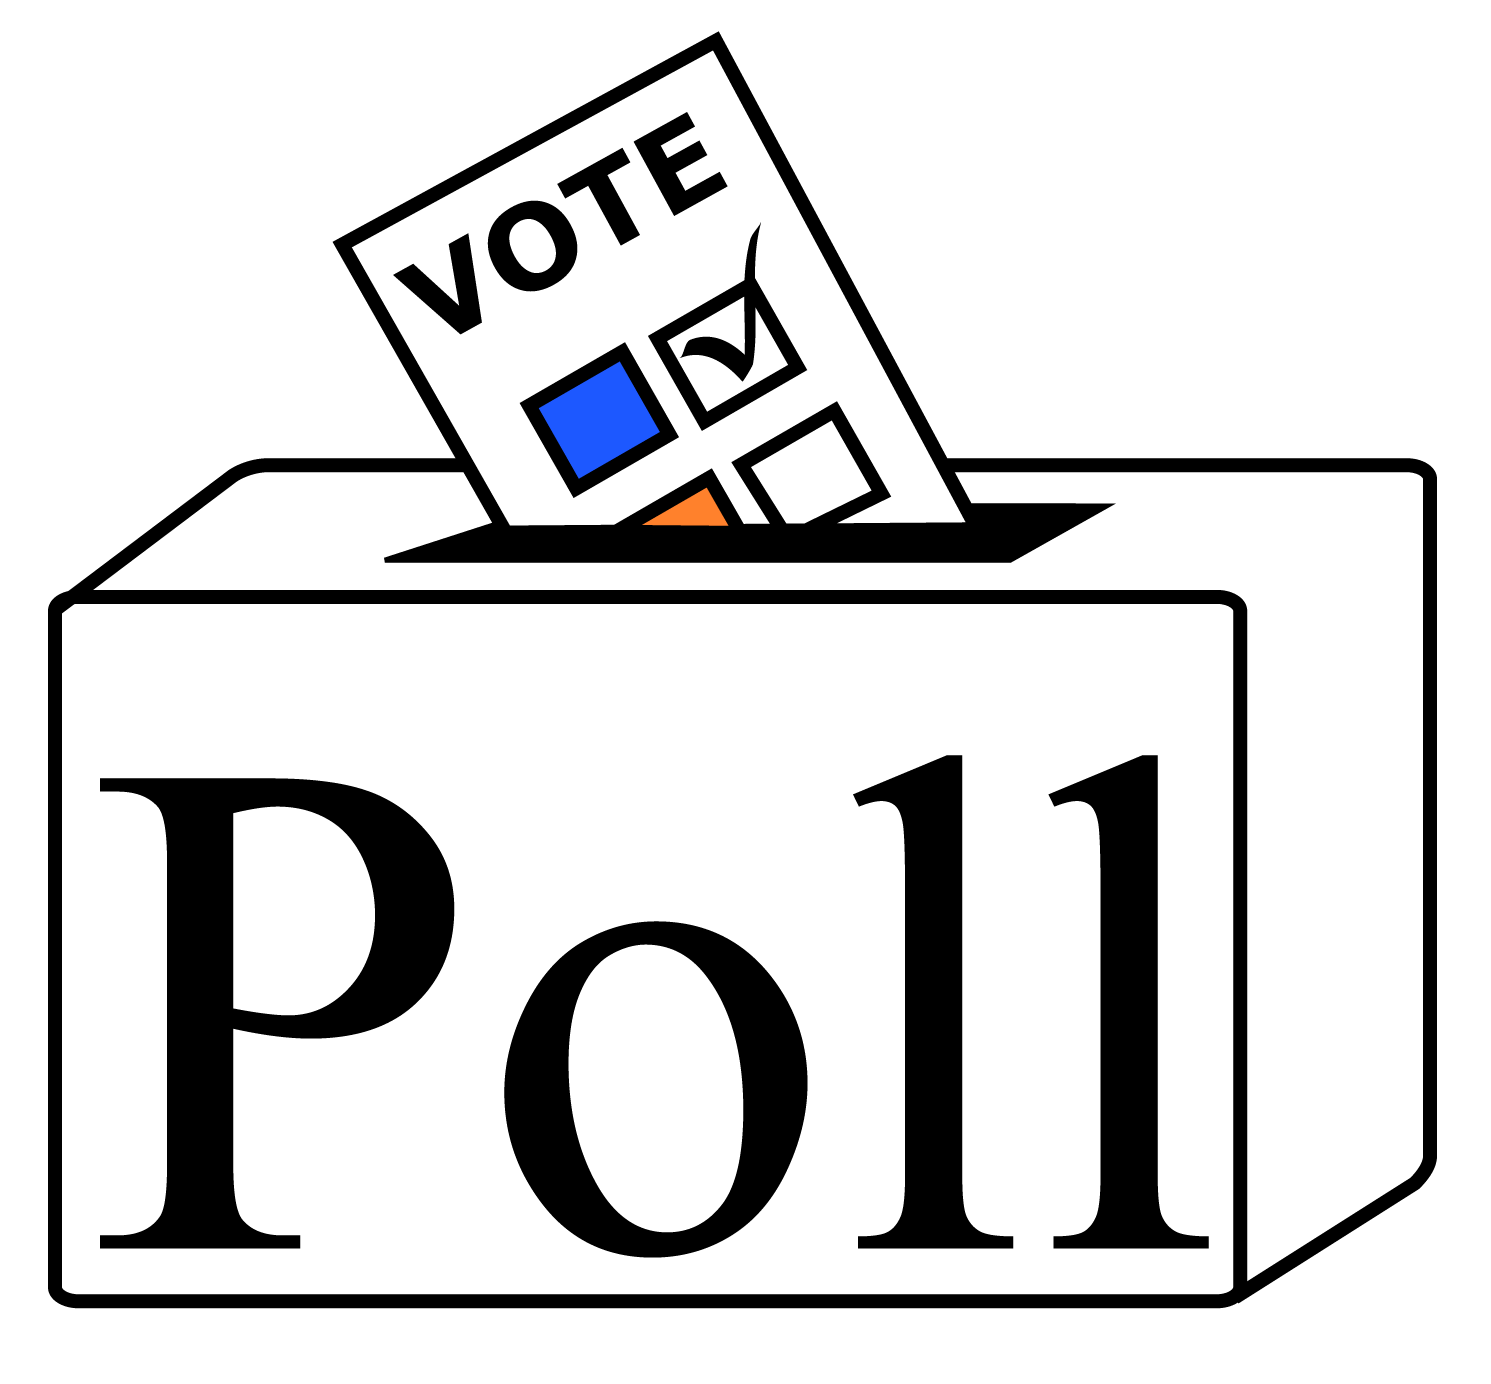 India general results gusture. Election clipart hand